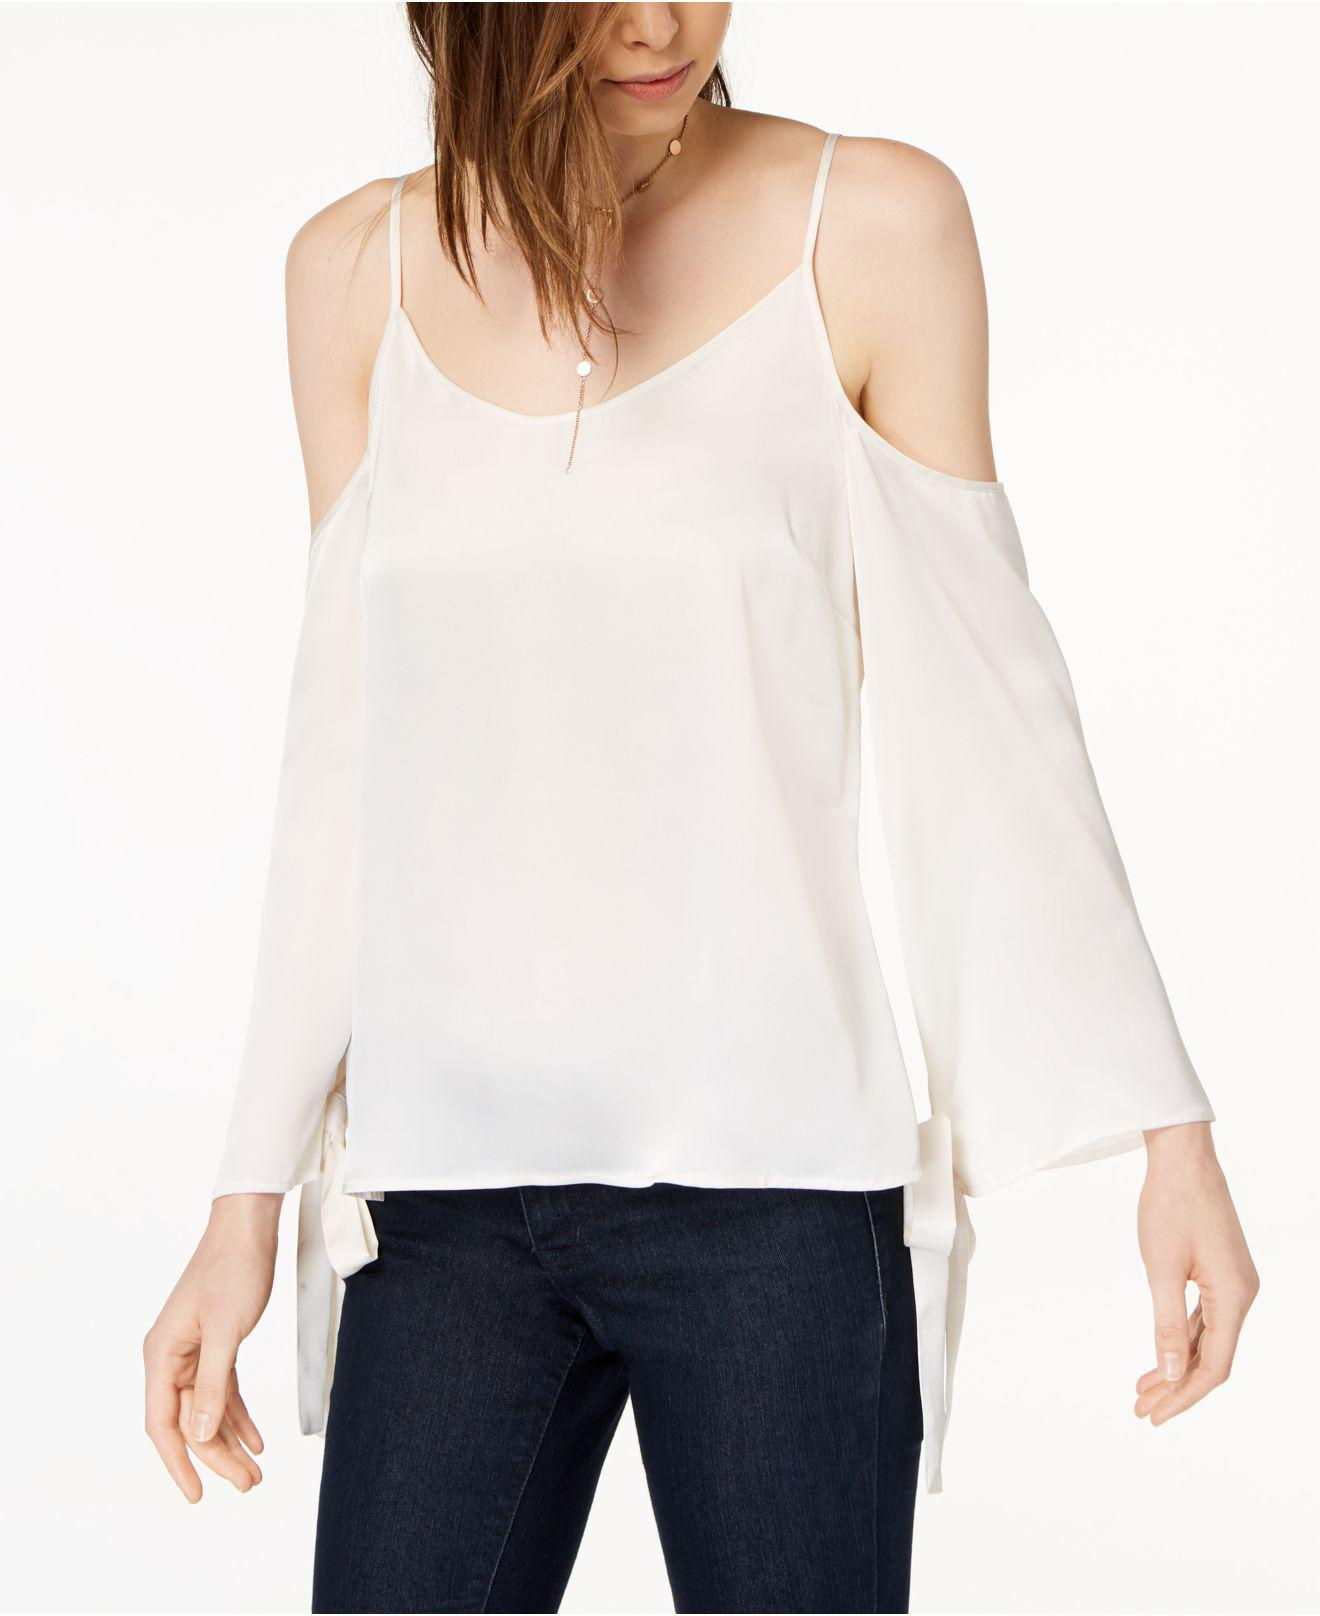 ac65db3e2d Lyst - Kensie Tie-sleeve Cold-shoulder Blouse in White